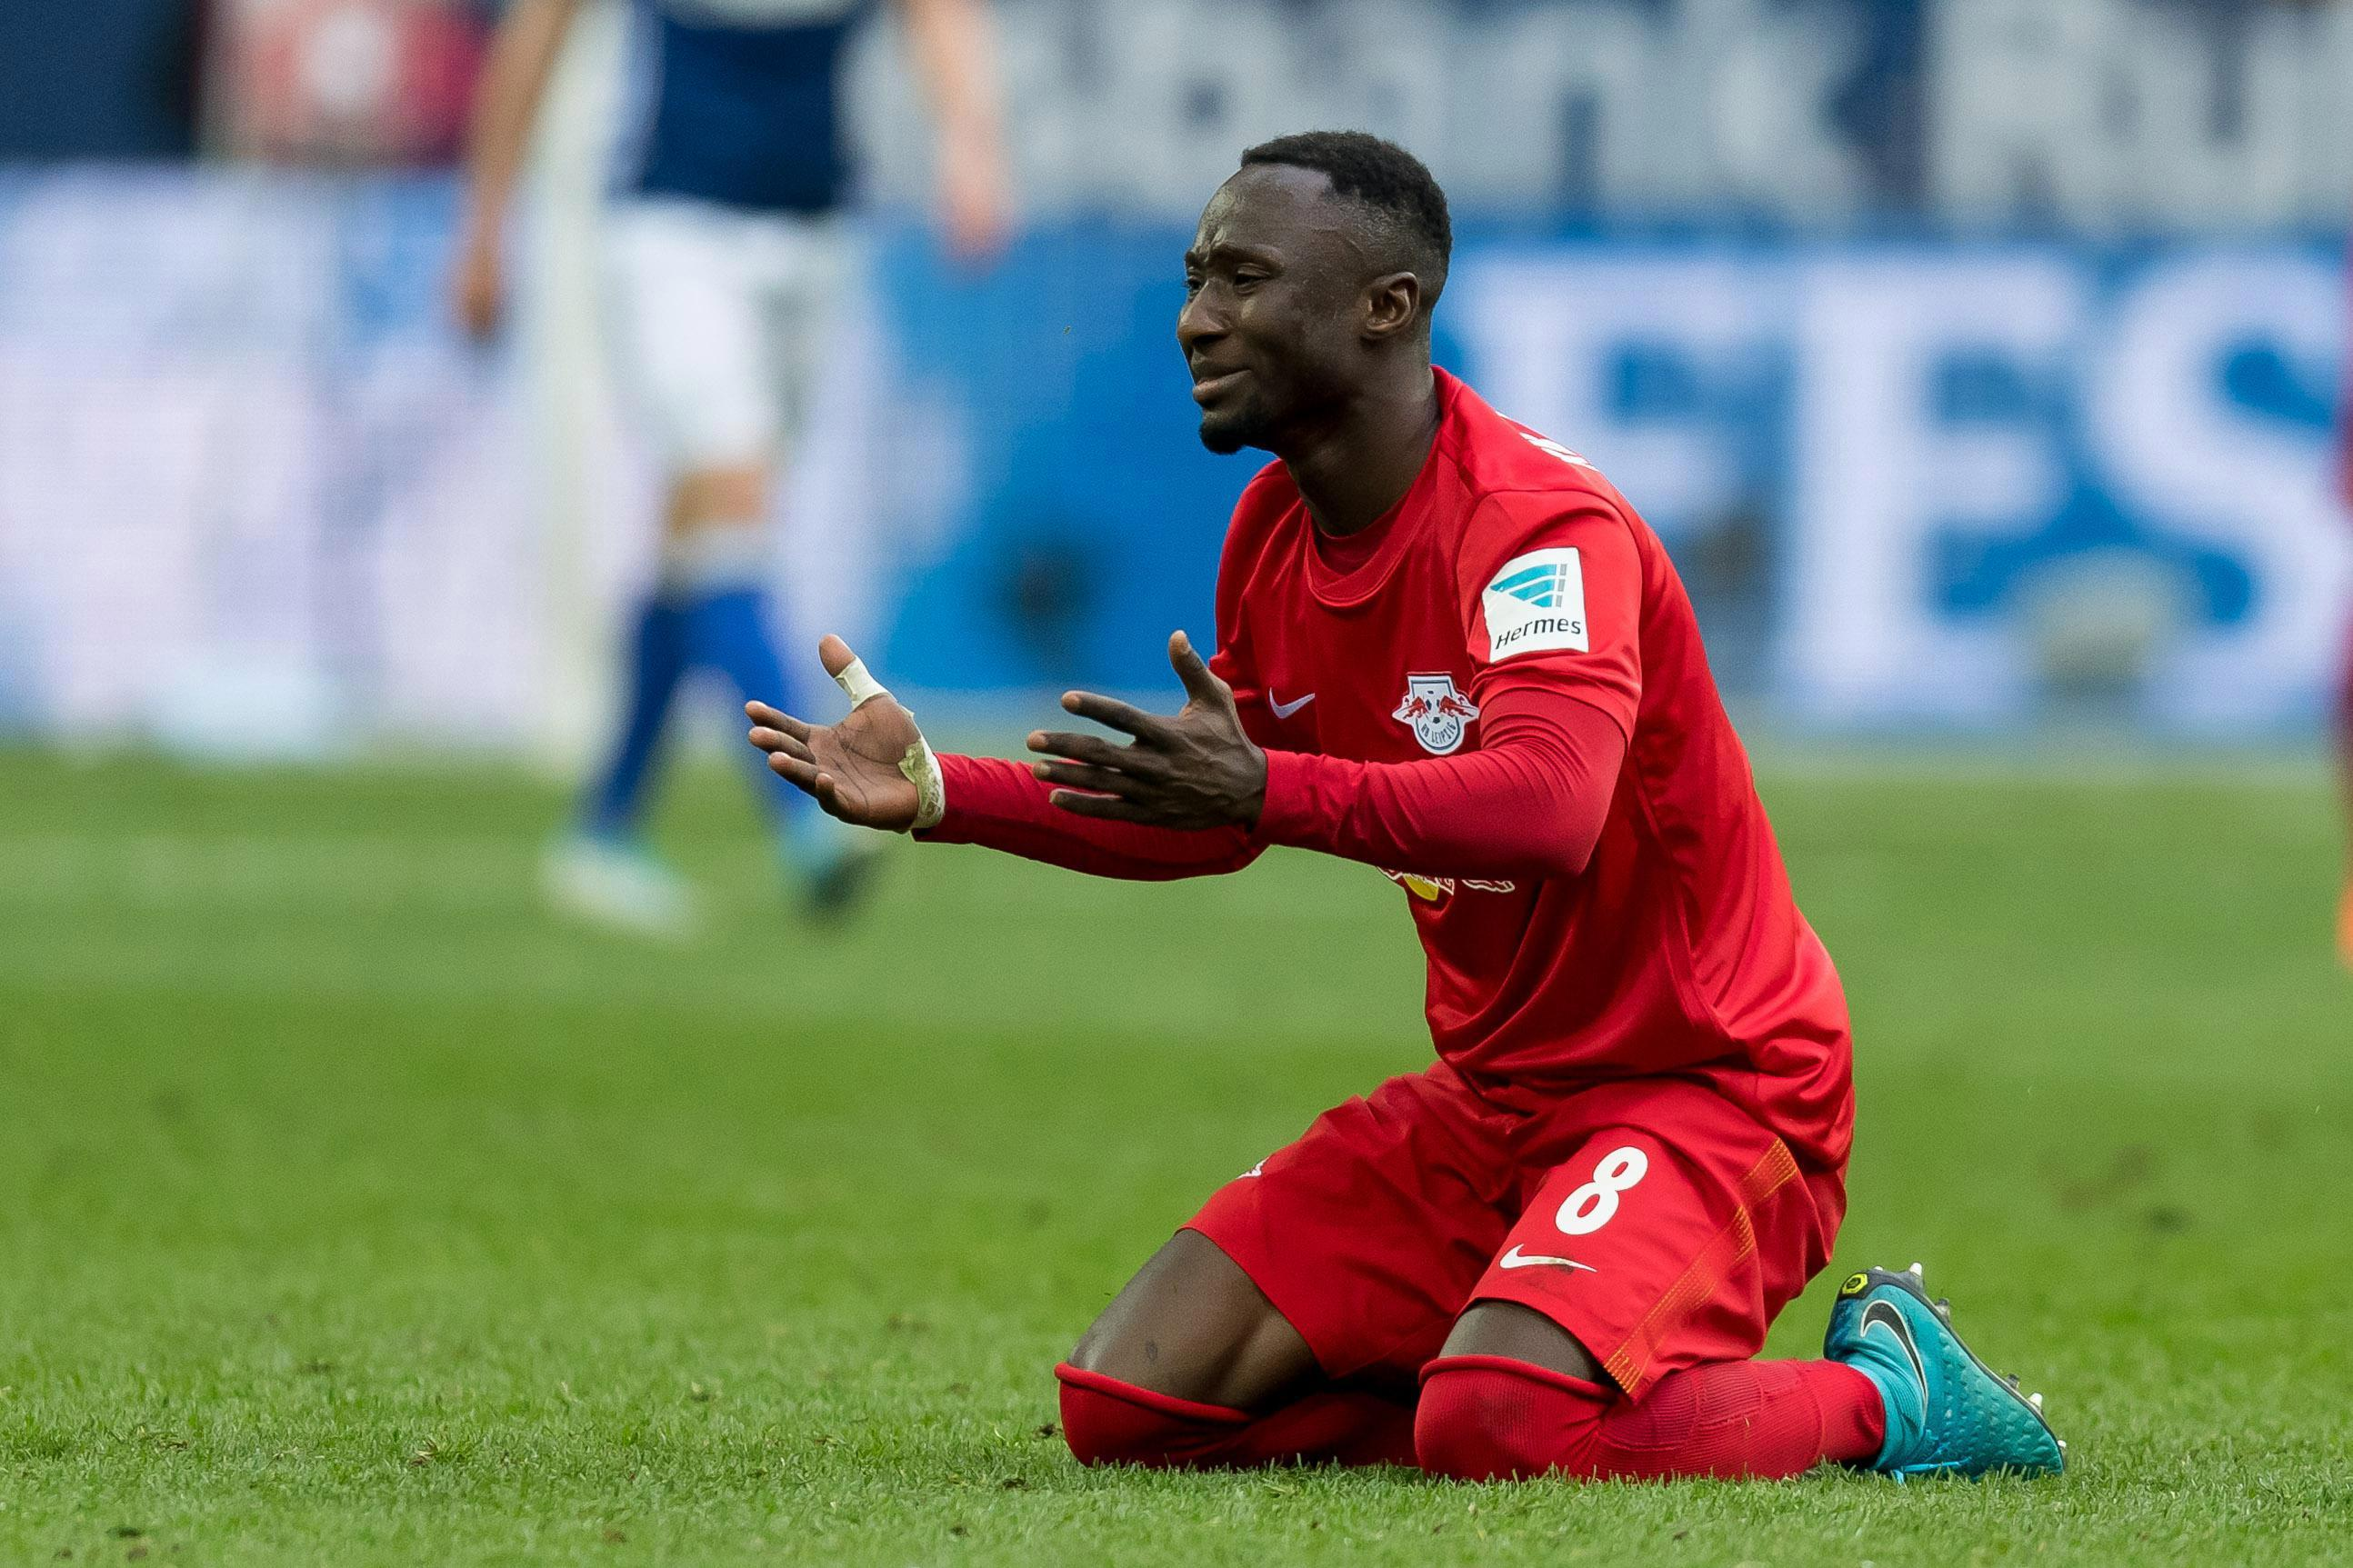 Leipzig and Naby Keita will be the team to avoid in Pot 4